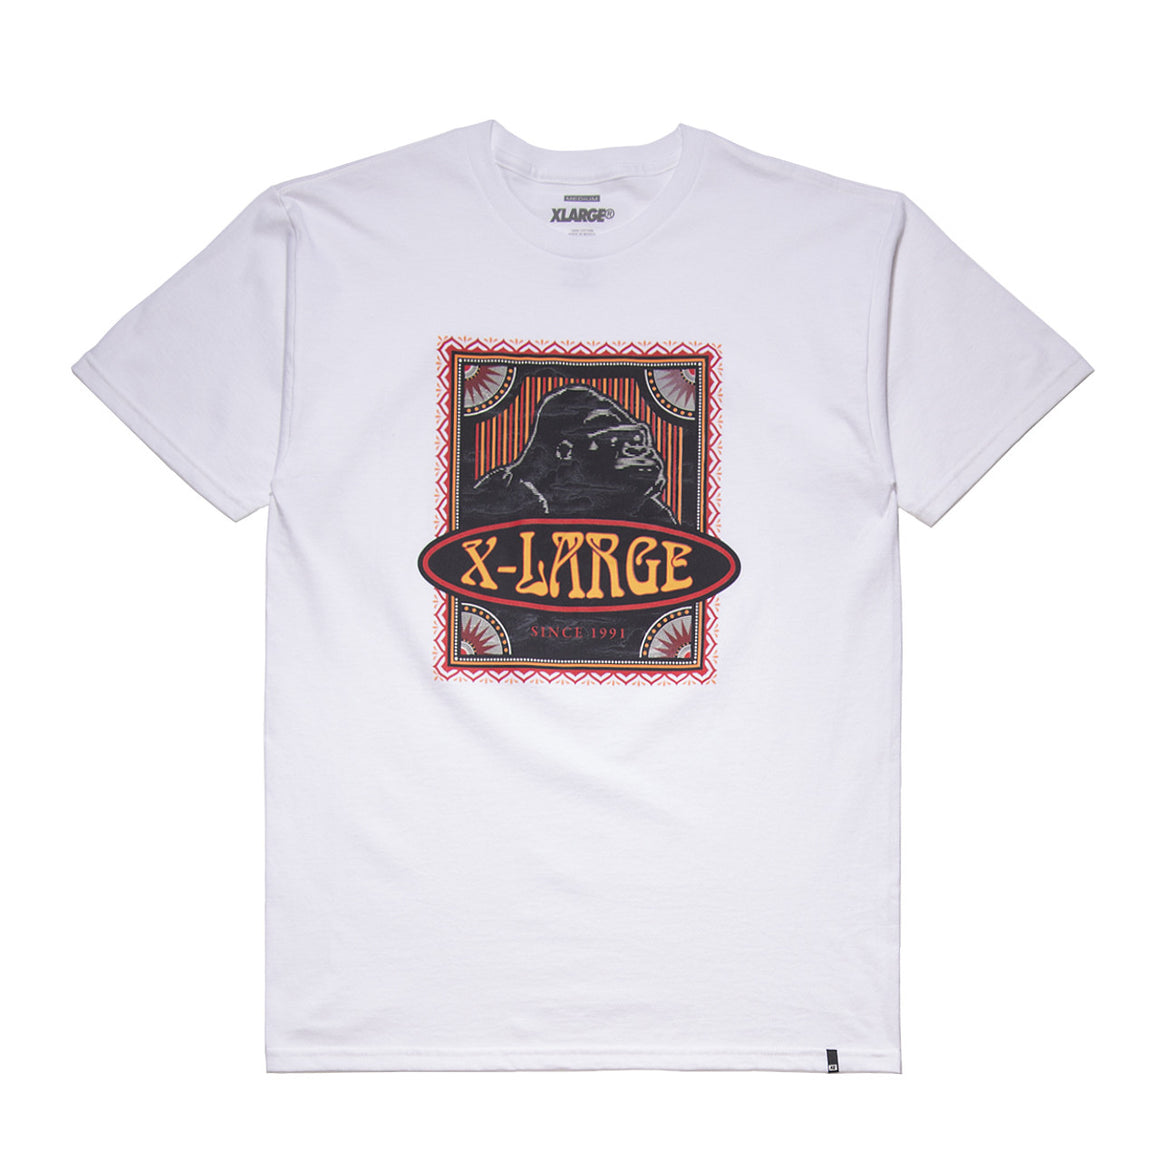 MYSTIC SS TEE - X-Large Clothing